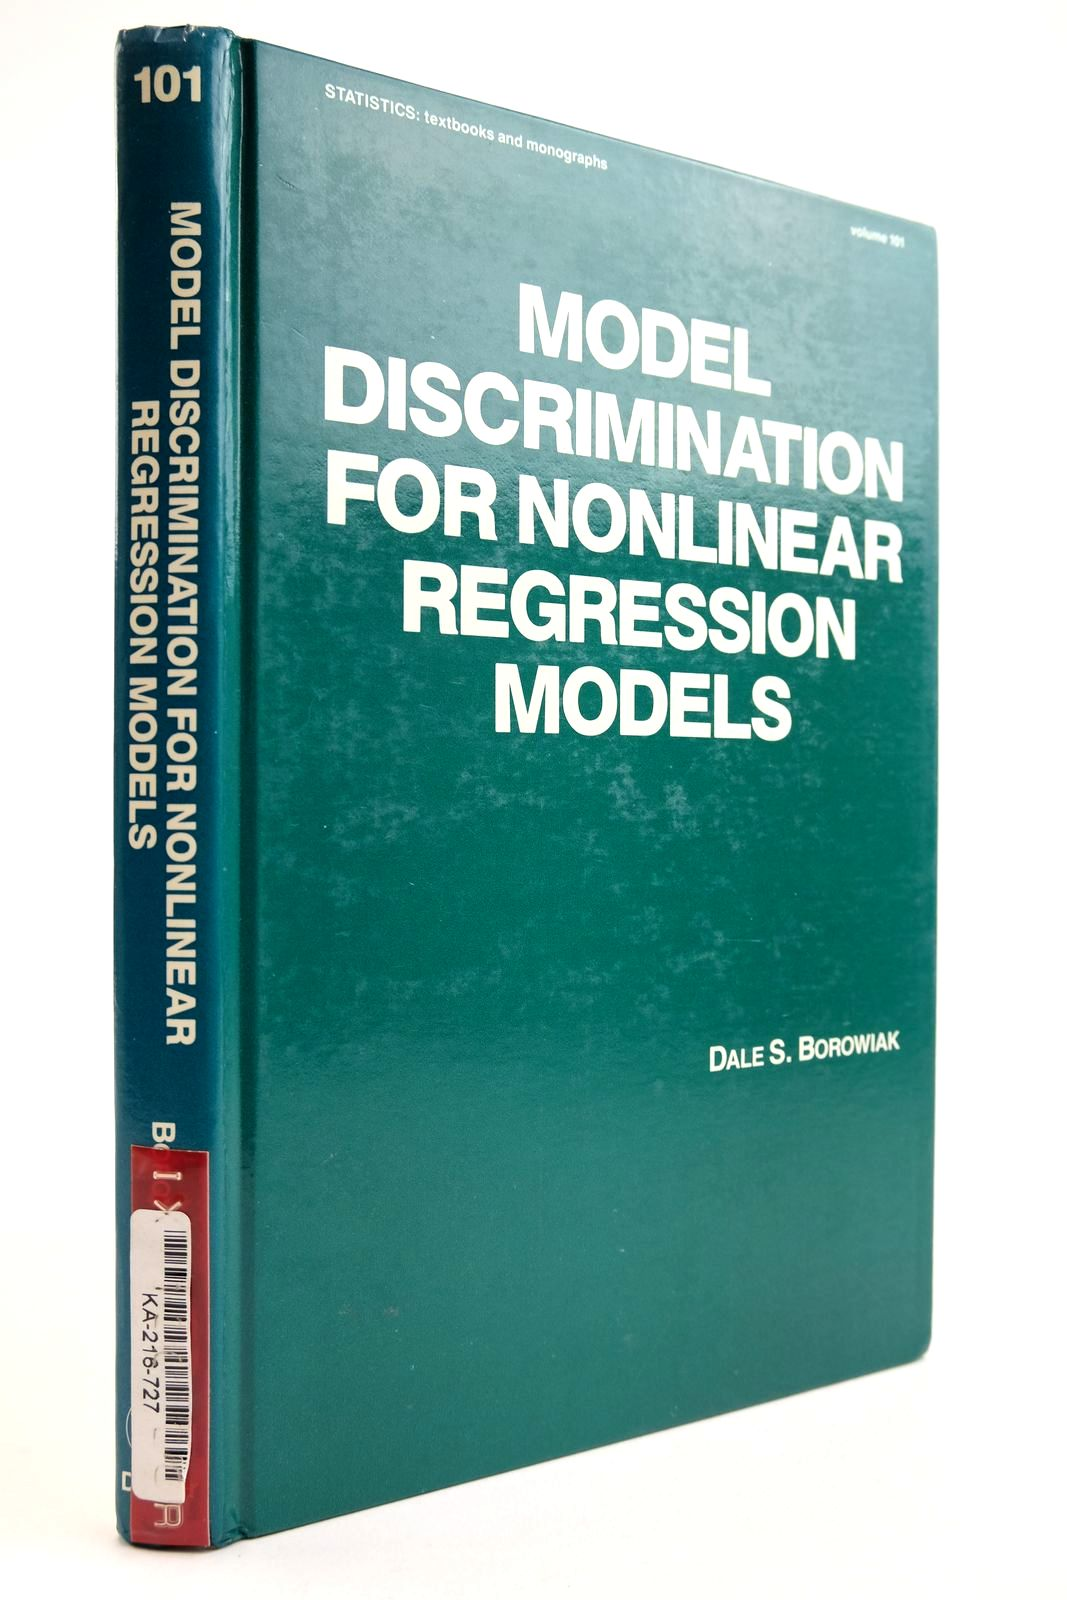 Photo of MODEL DISCRIMINATION FOR NONLINEAR REGRESSION MODELS- Stock Number: 2134107